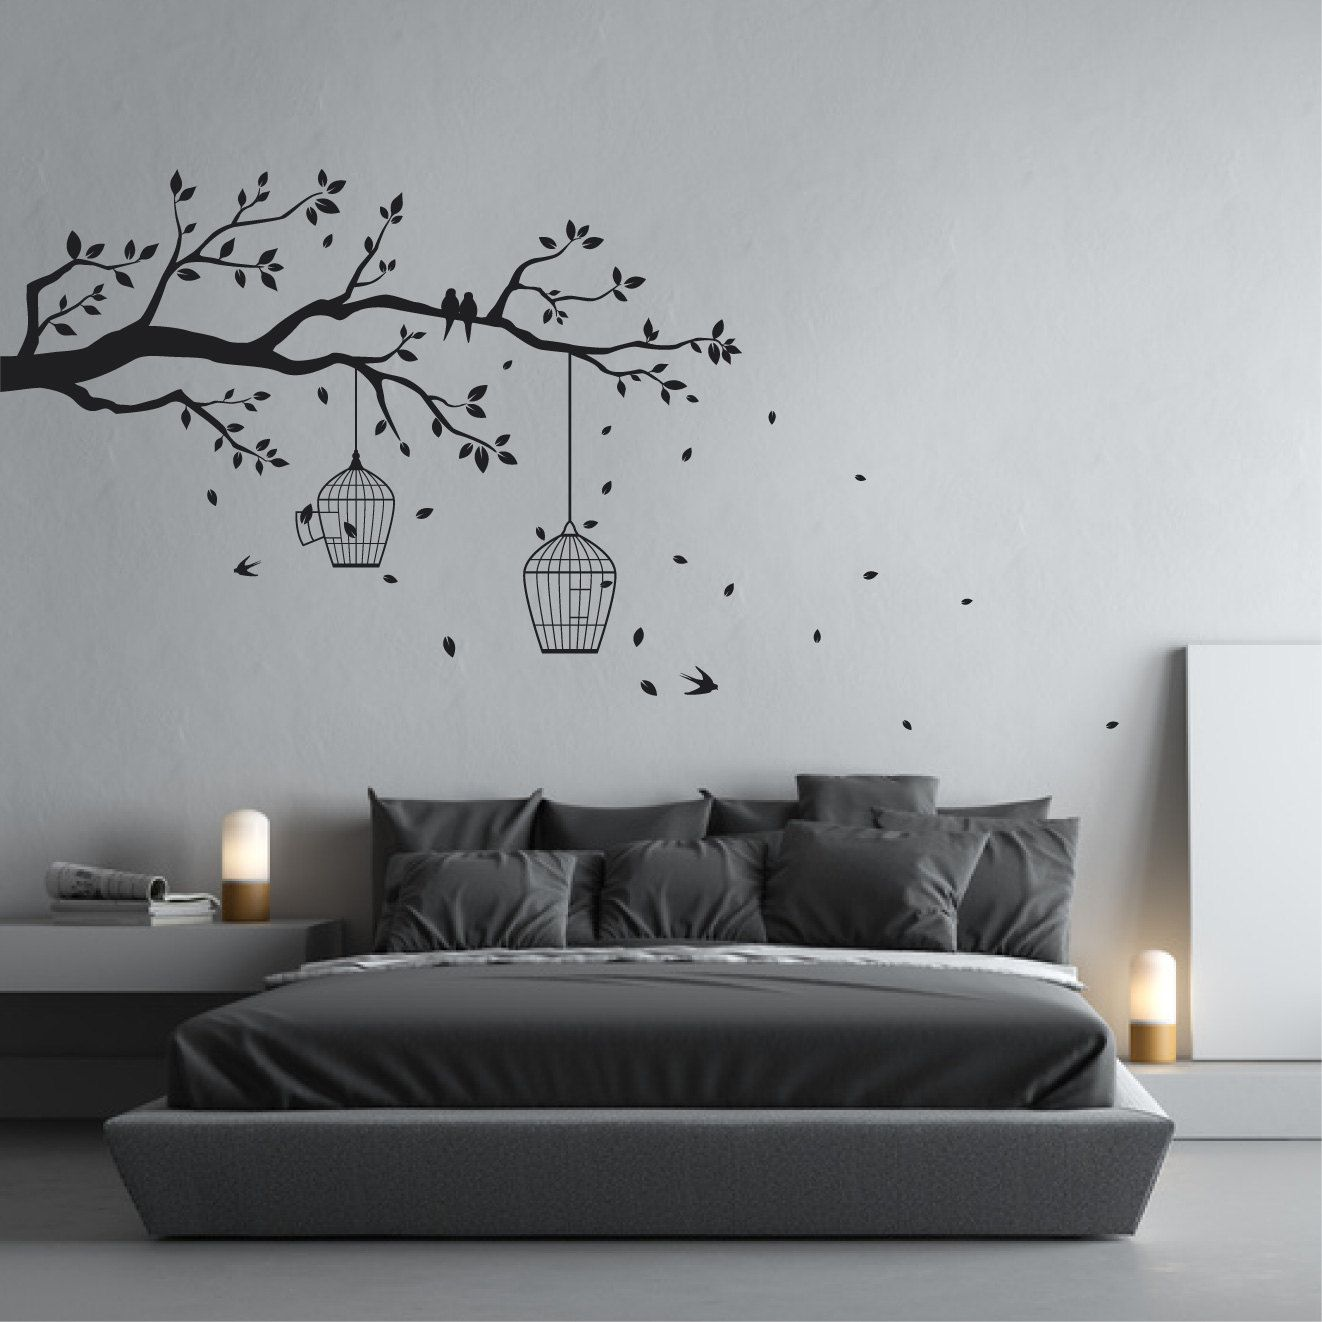 fixatedesigns wall sticker design decal wall art home on wall stickers for home id=90403